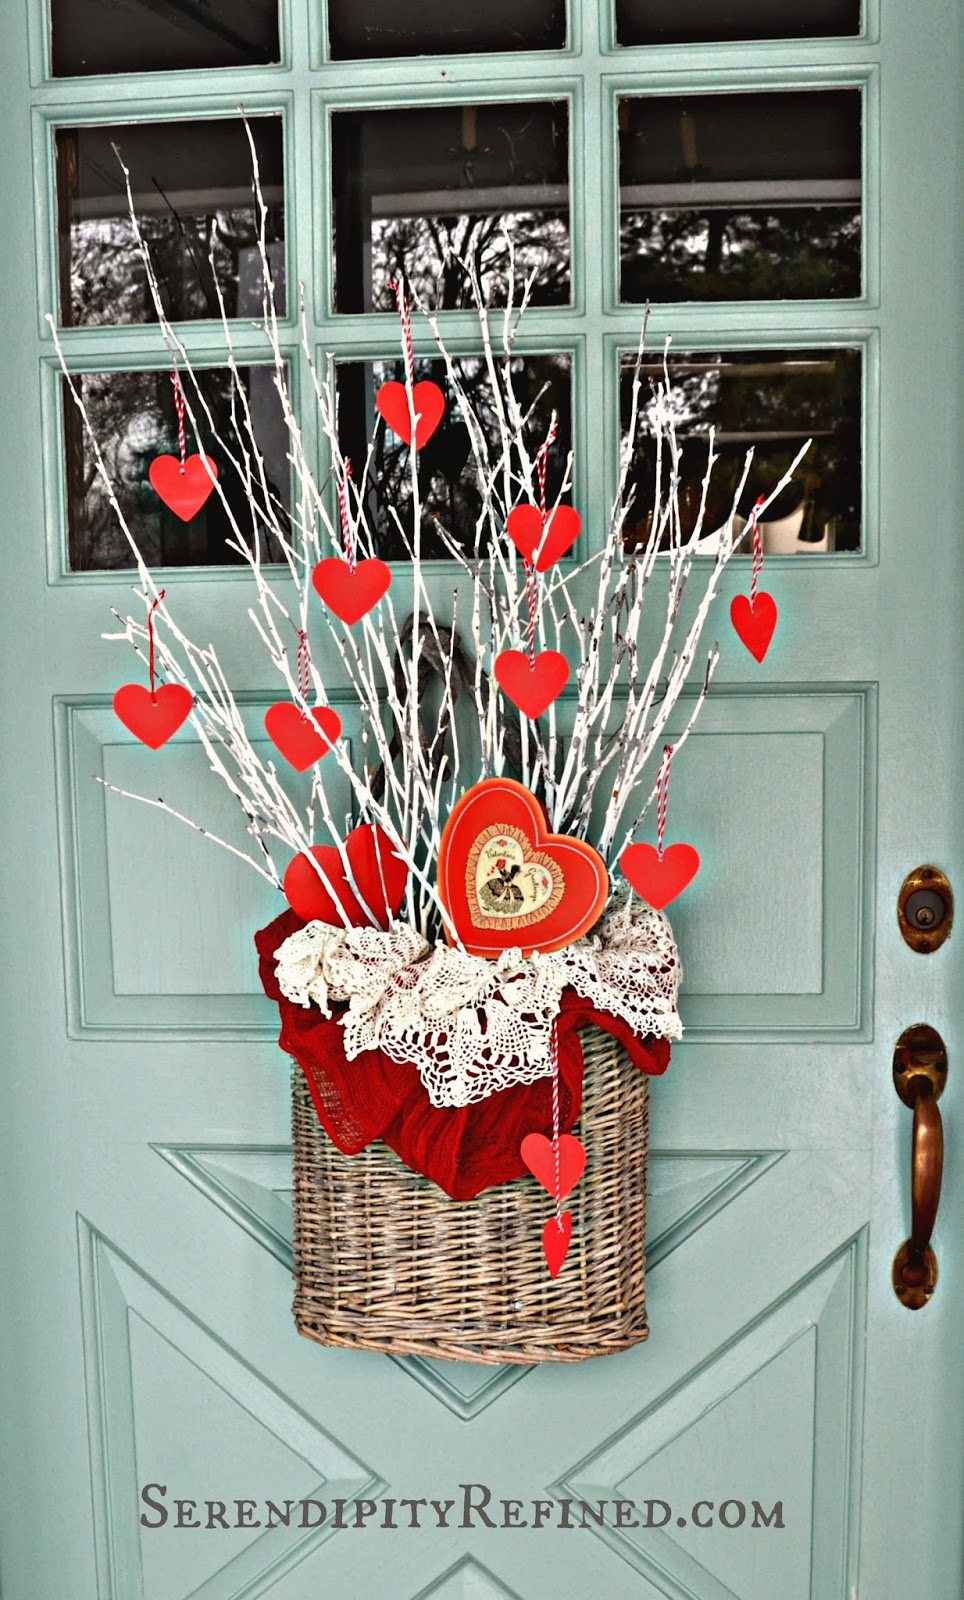 Serendipity Refined Blog: Simple DIY Valentines Day Door Decor